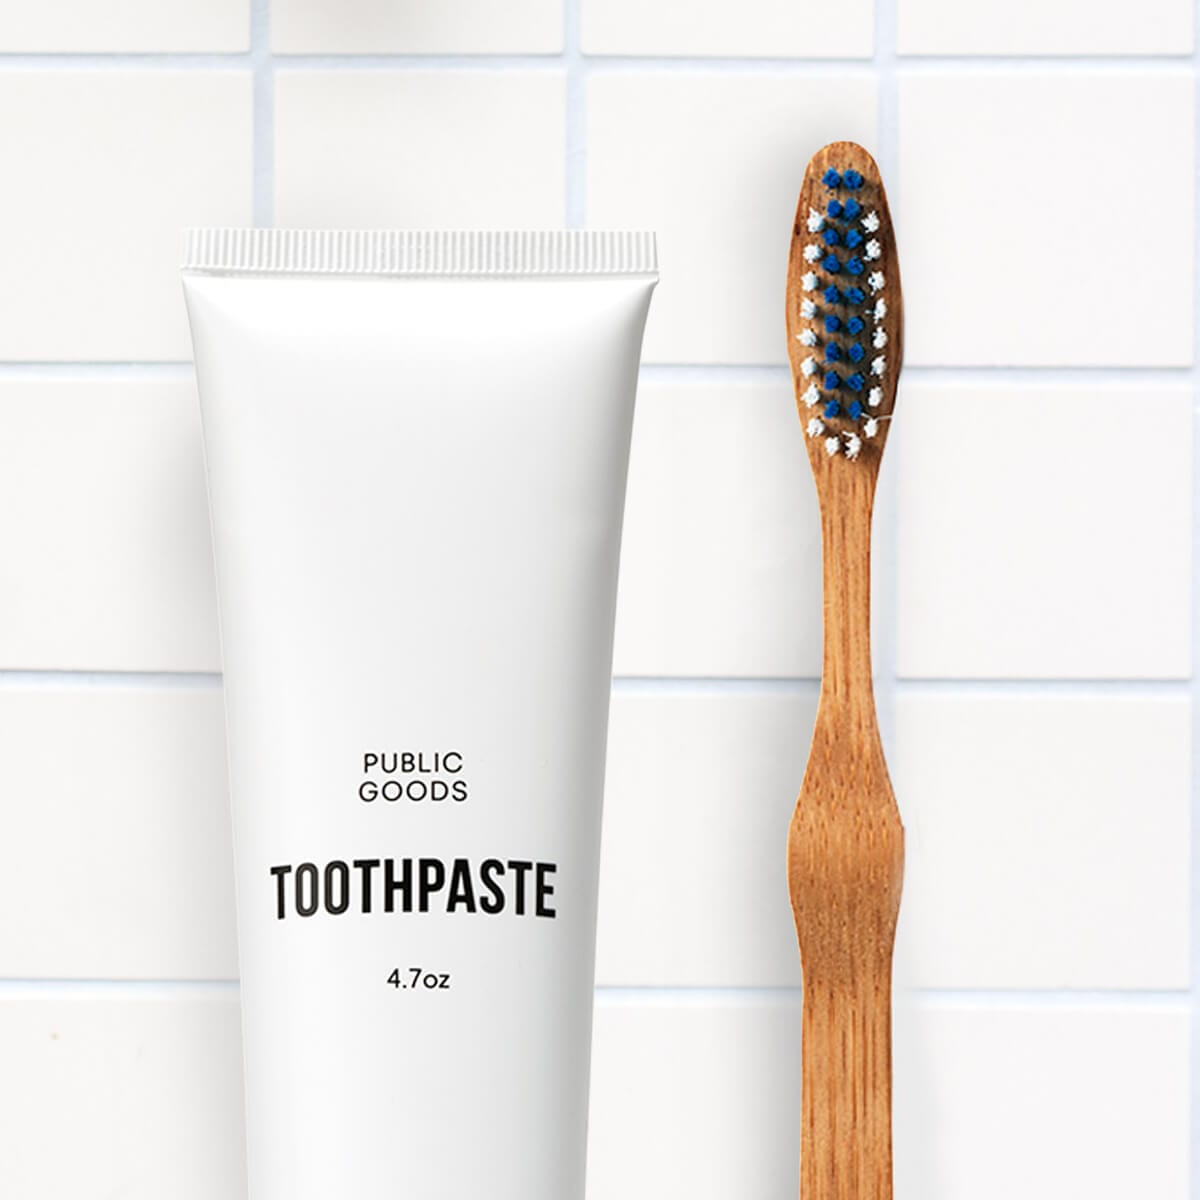 Fluoride-Free Toothpaste: Is It Really Better For Your Teeth?